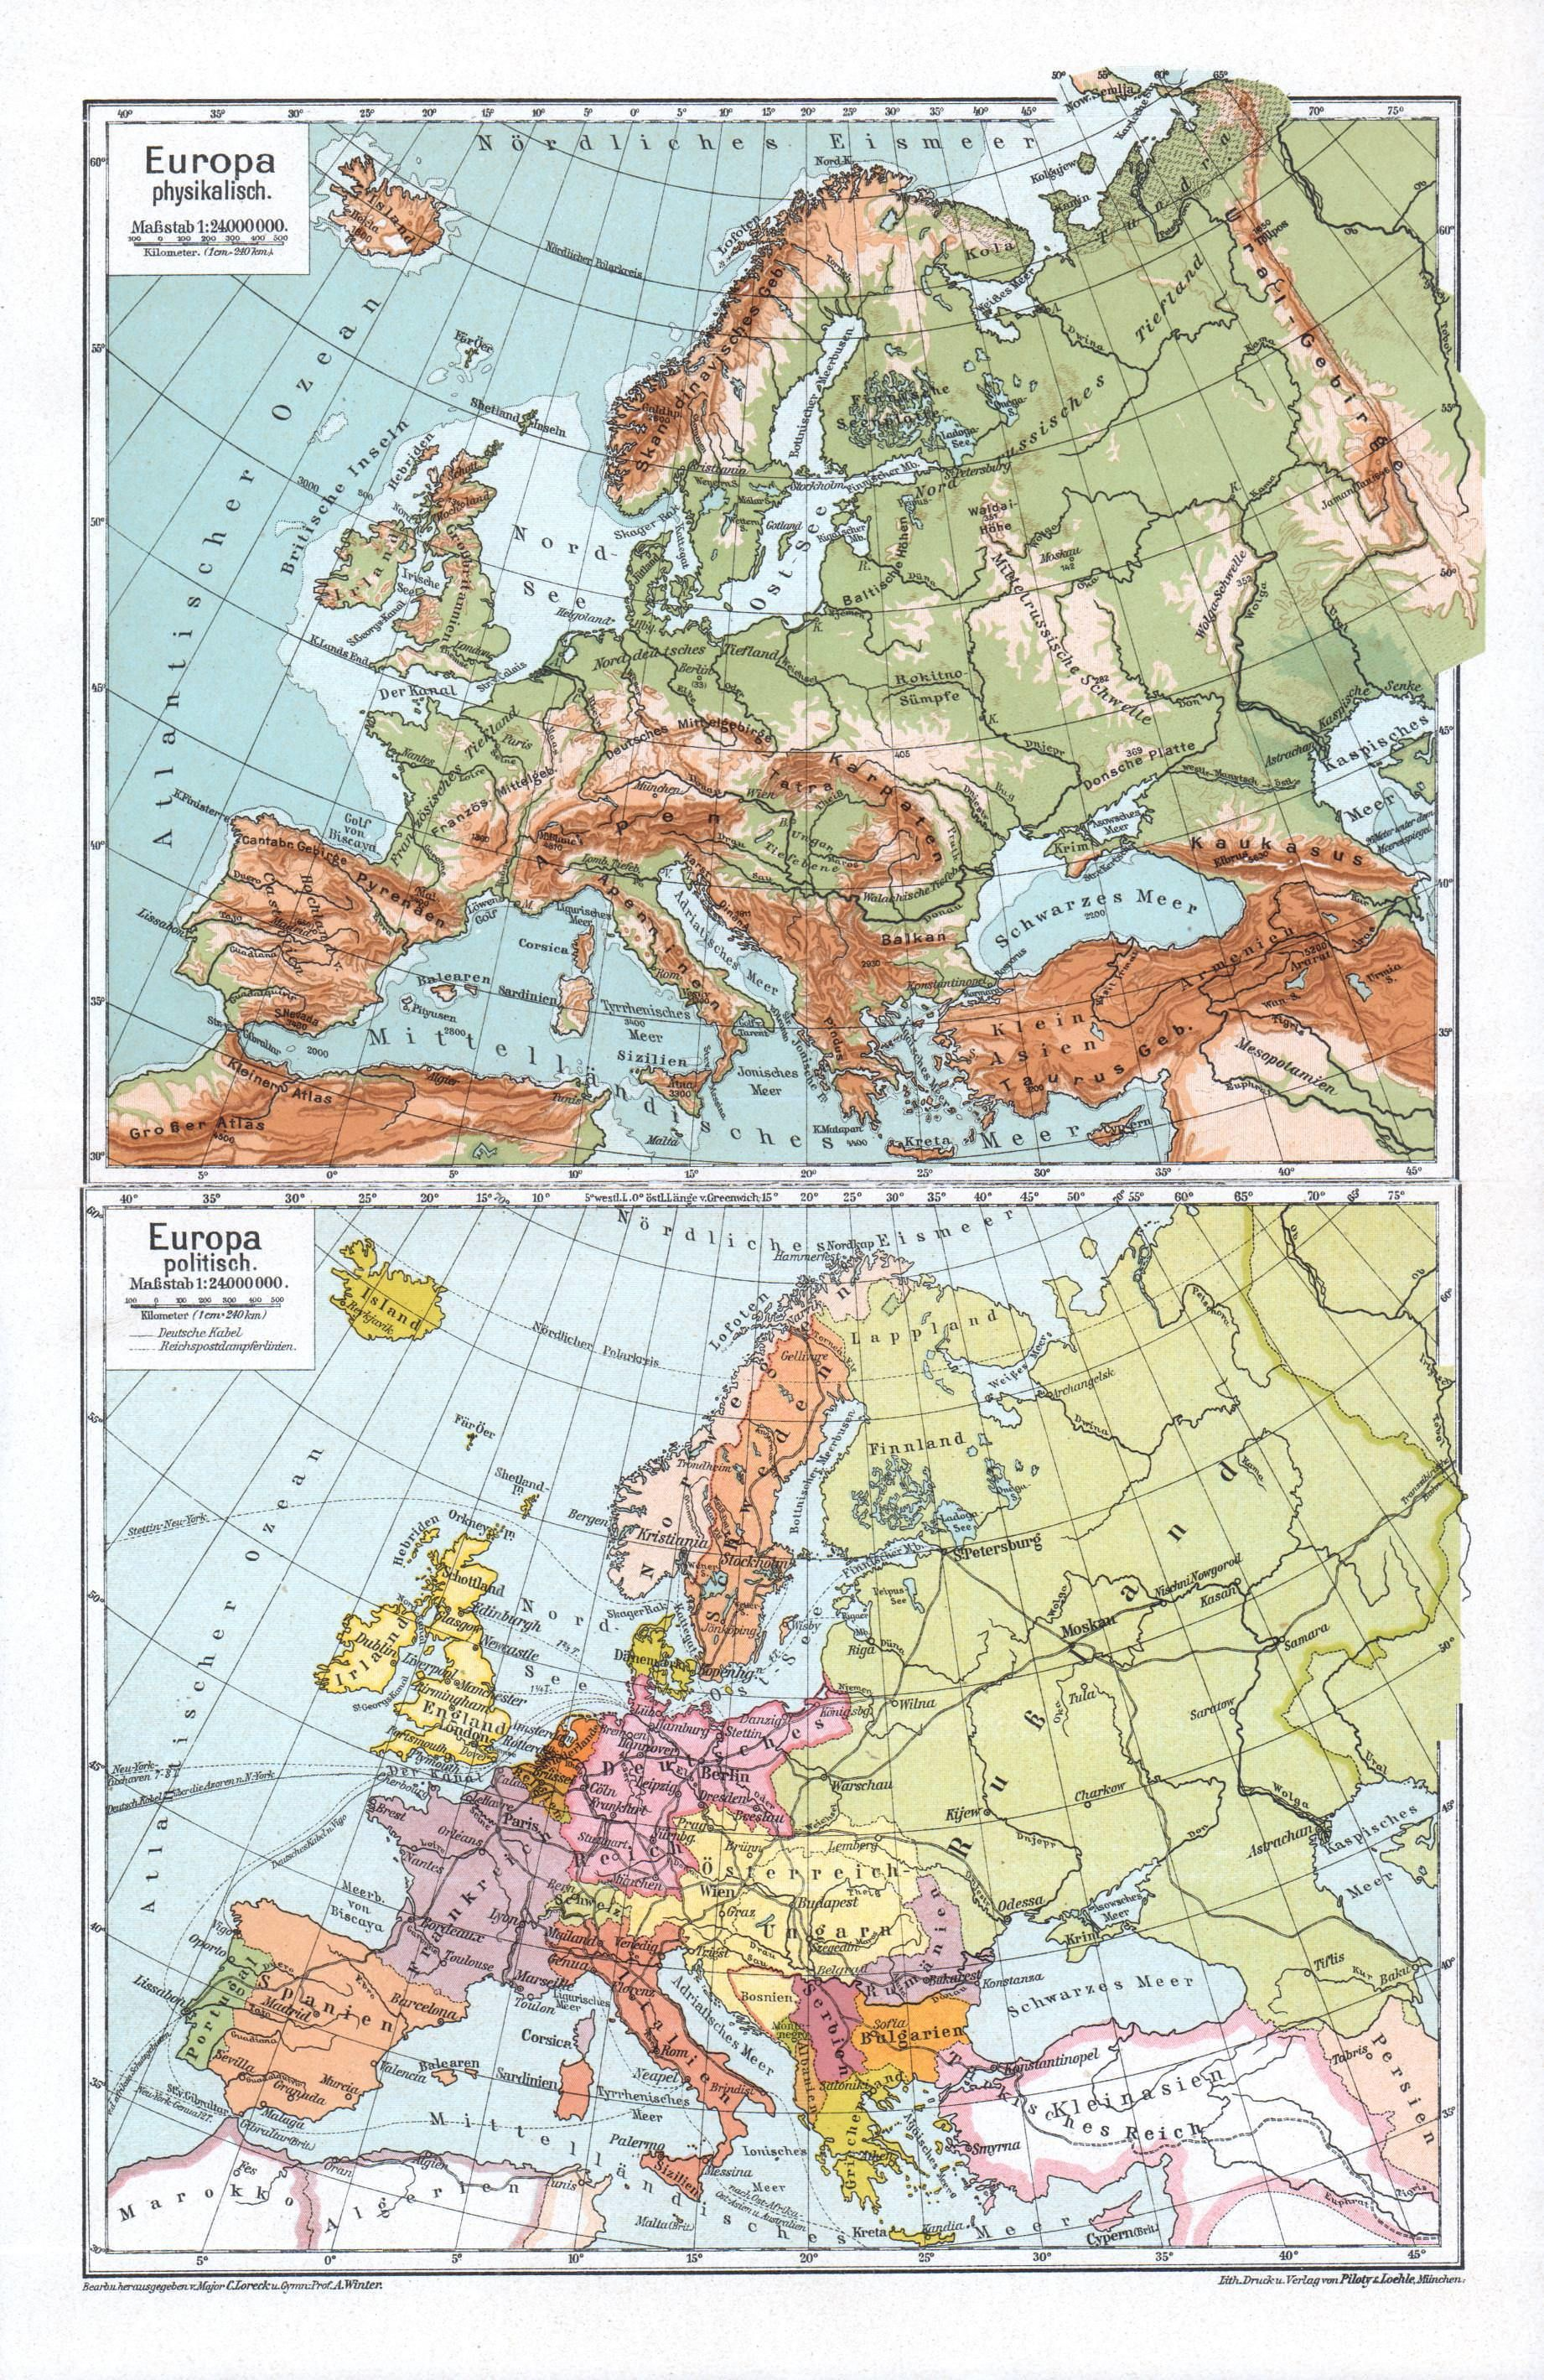 German Map Of Europe, 1913 | mapmania | Pinterest | Map, Europe and ...